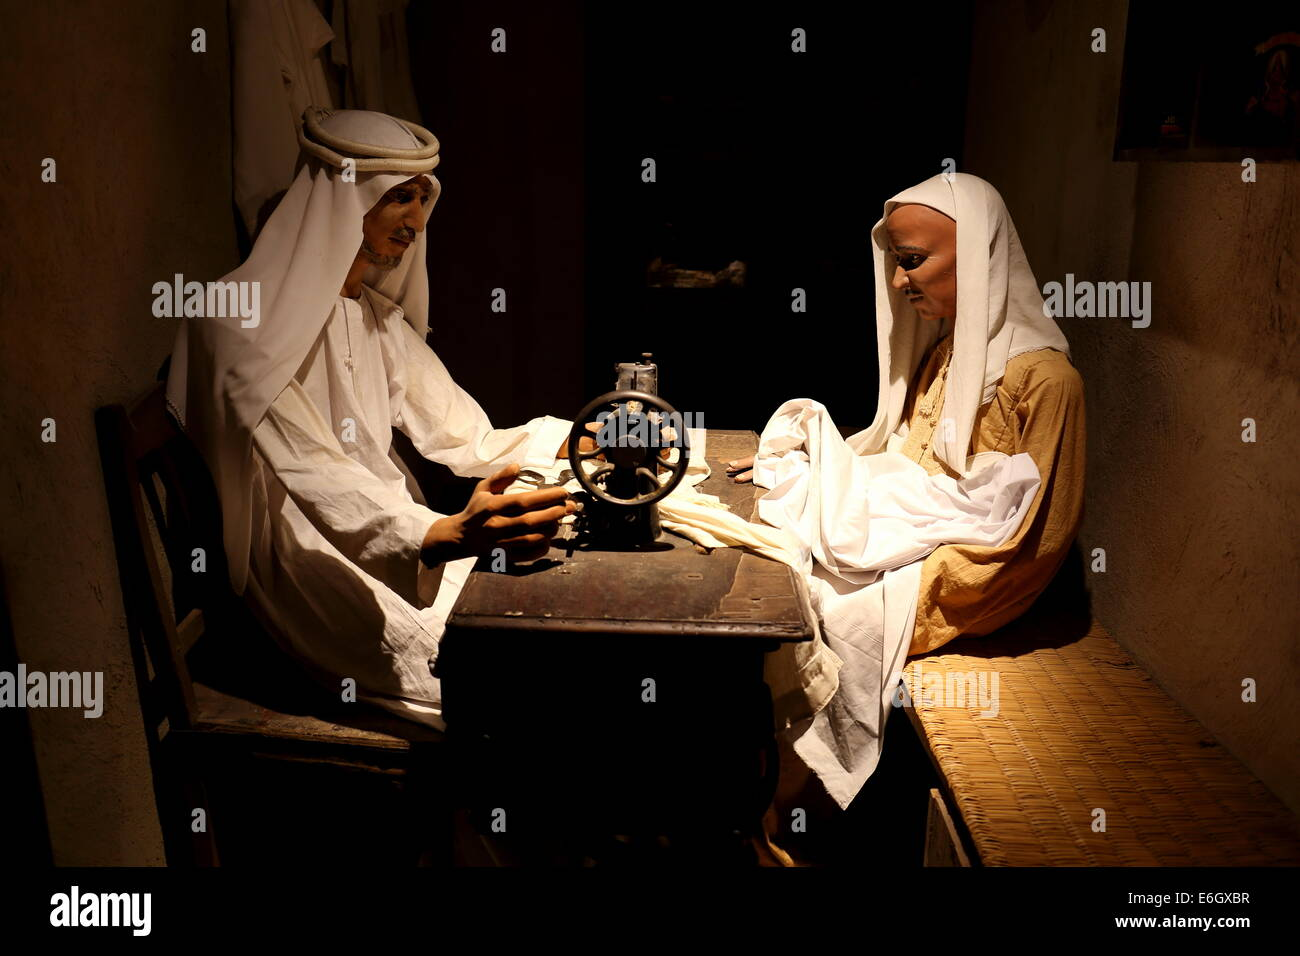 Diorama of a Bahraini tailor at The Bahrain National Museum, Manama, Kingdom of Bahrain - Stock Image